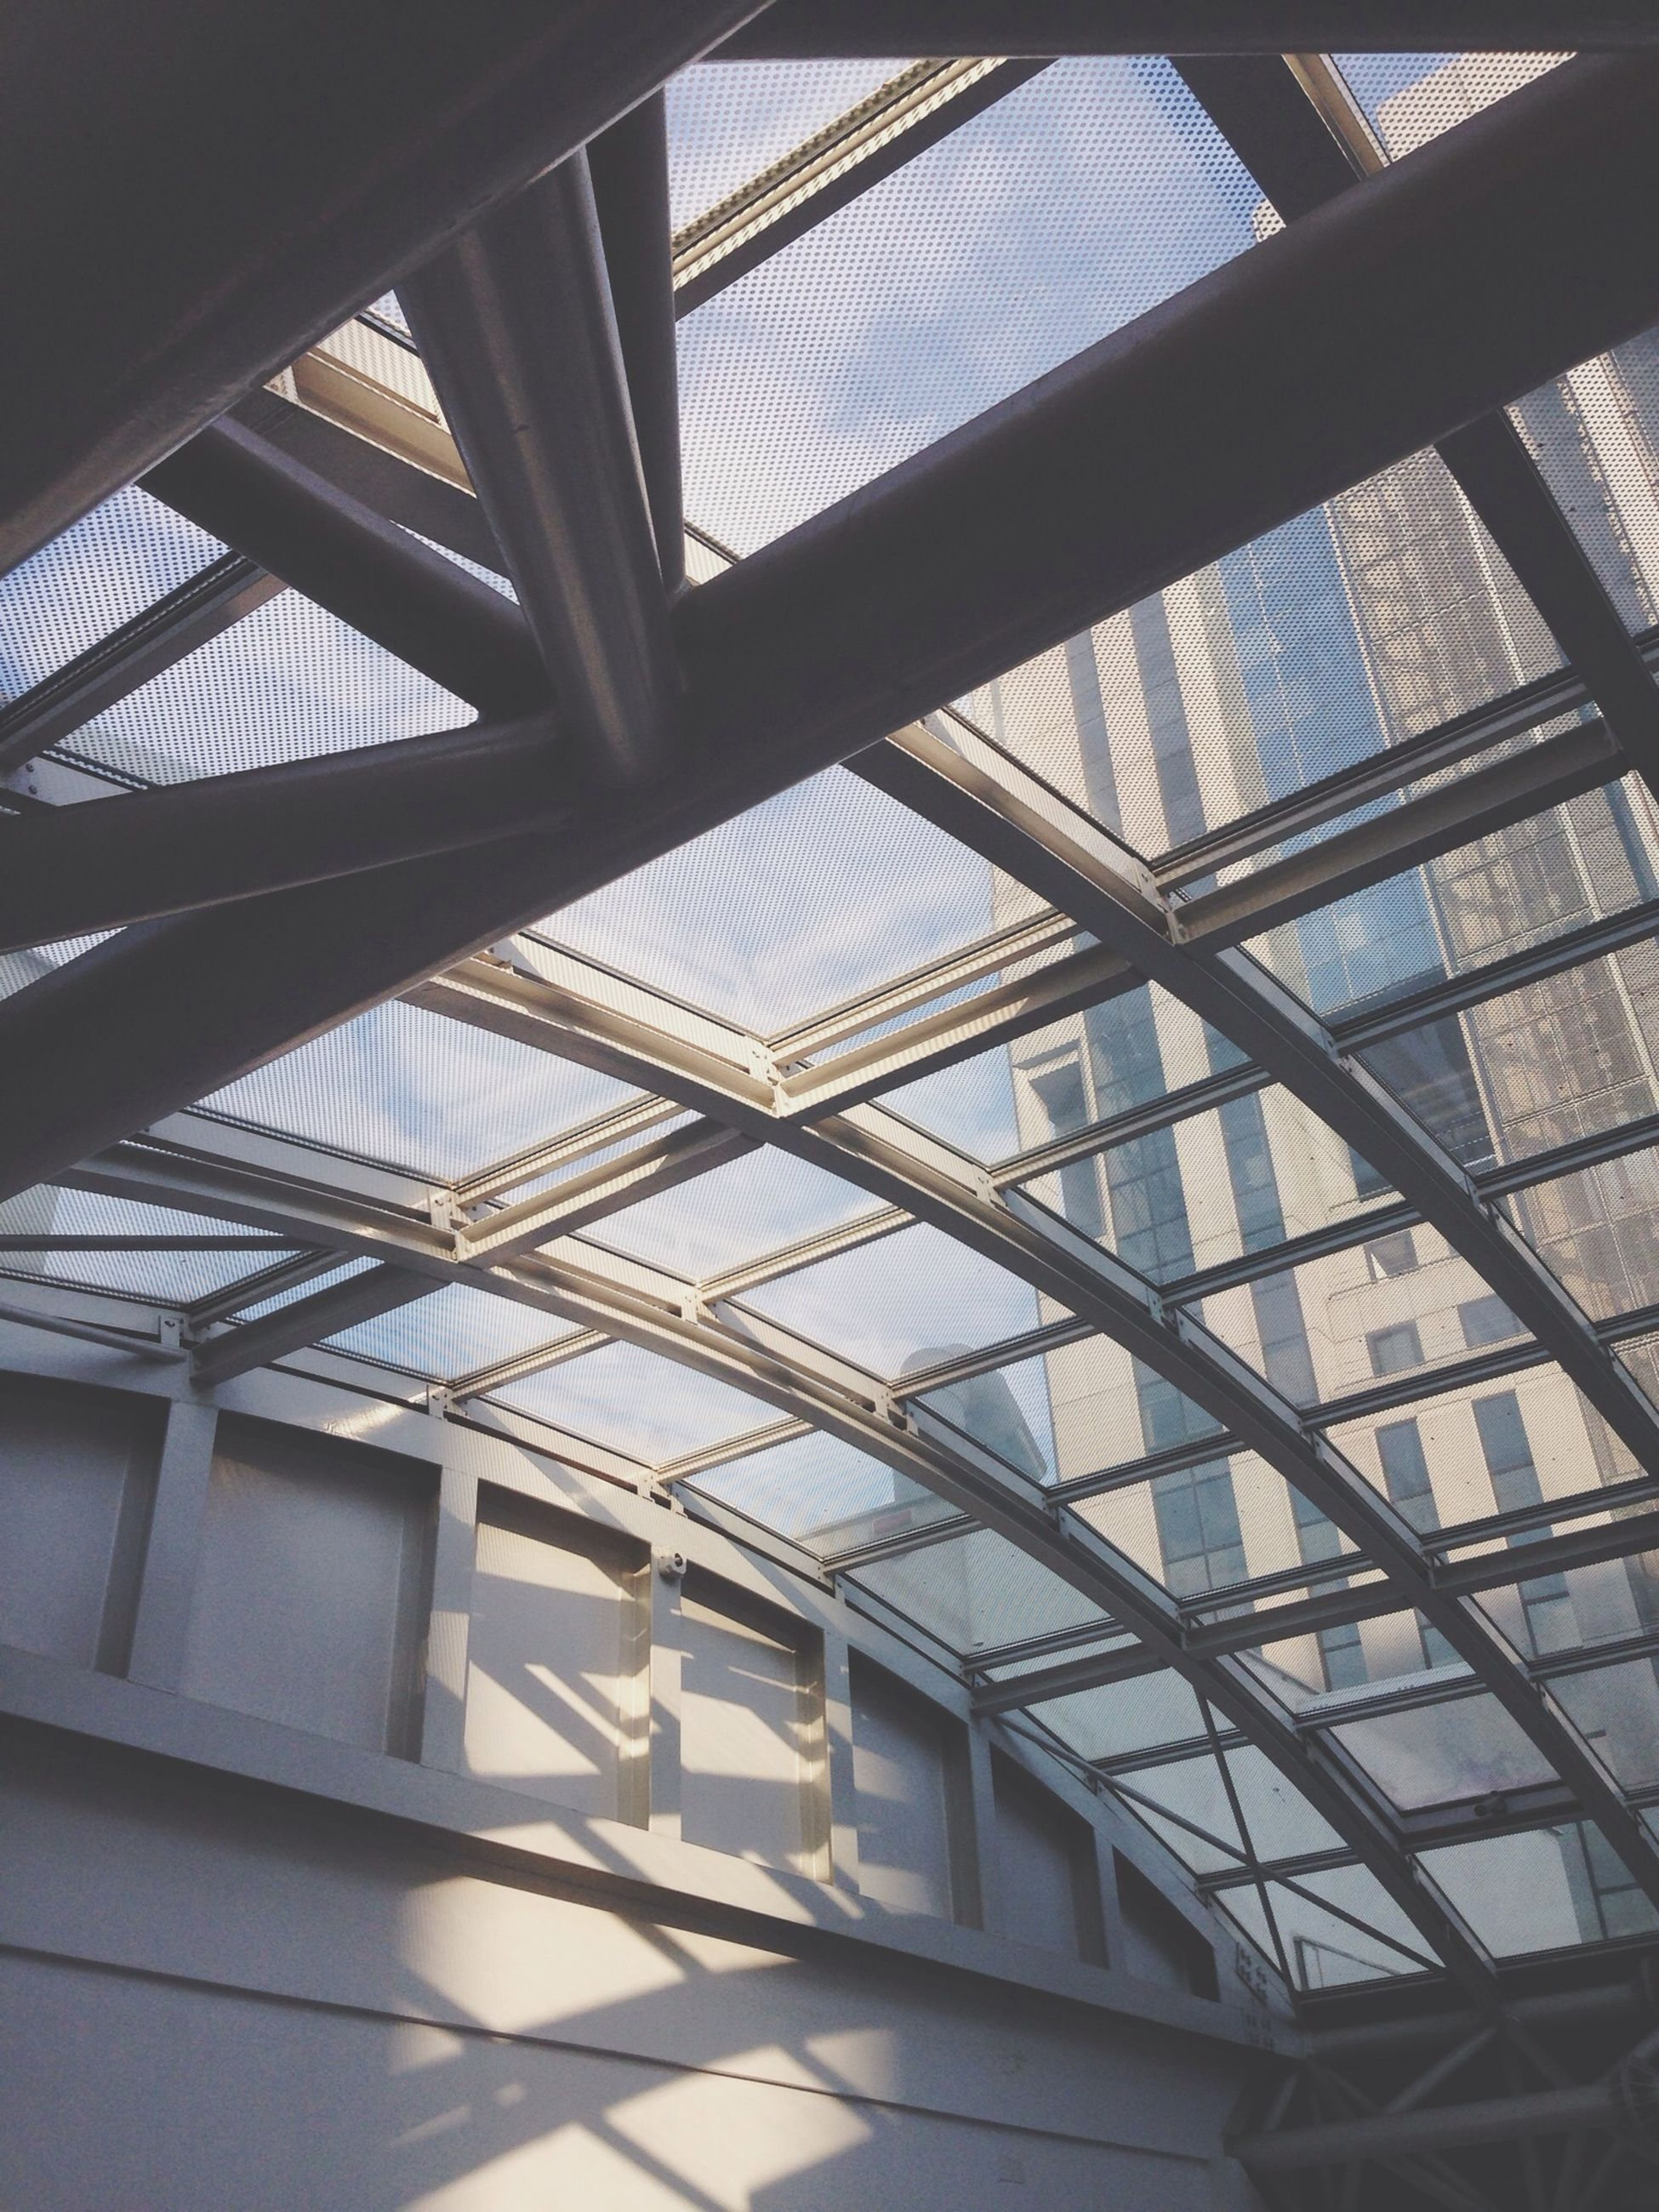 architecture, built structure, low angle view, indoors, modern, building exterior, glass - material, building, ceiling, pattern, architectural feature, window, directly below, day, office building, no people, sky, city, railing, skylight